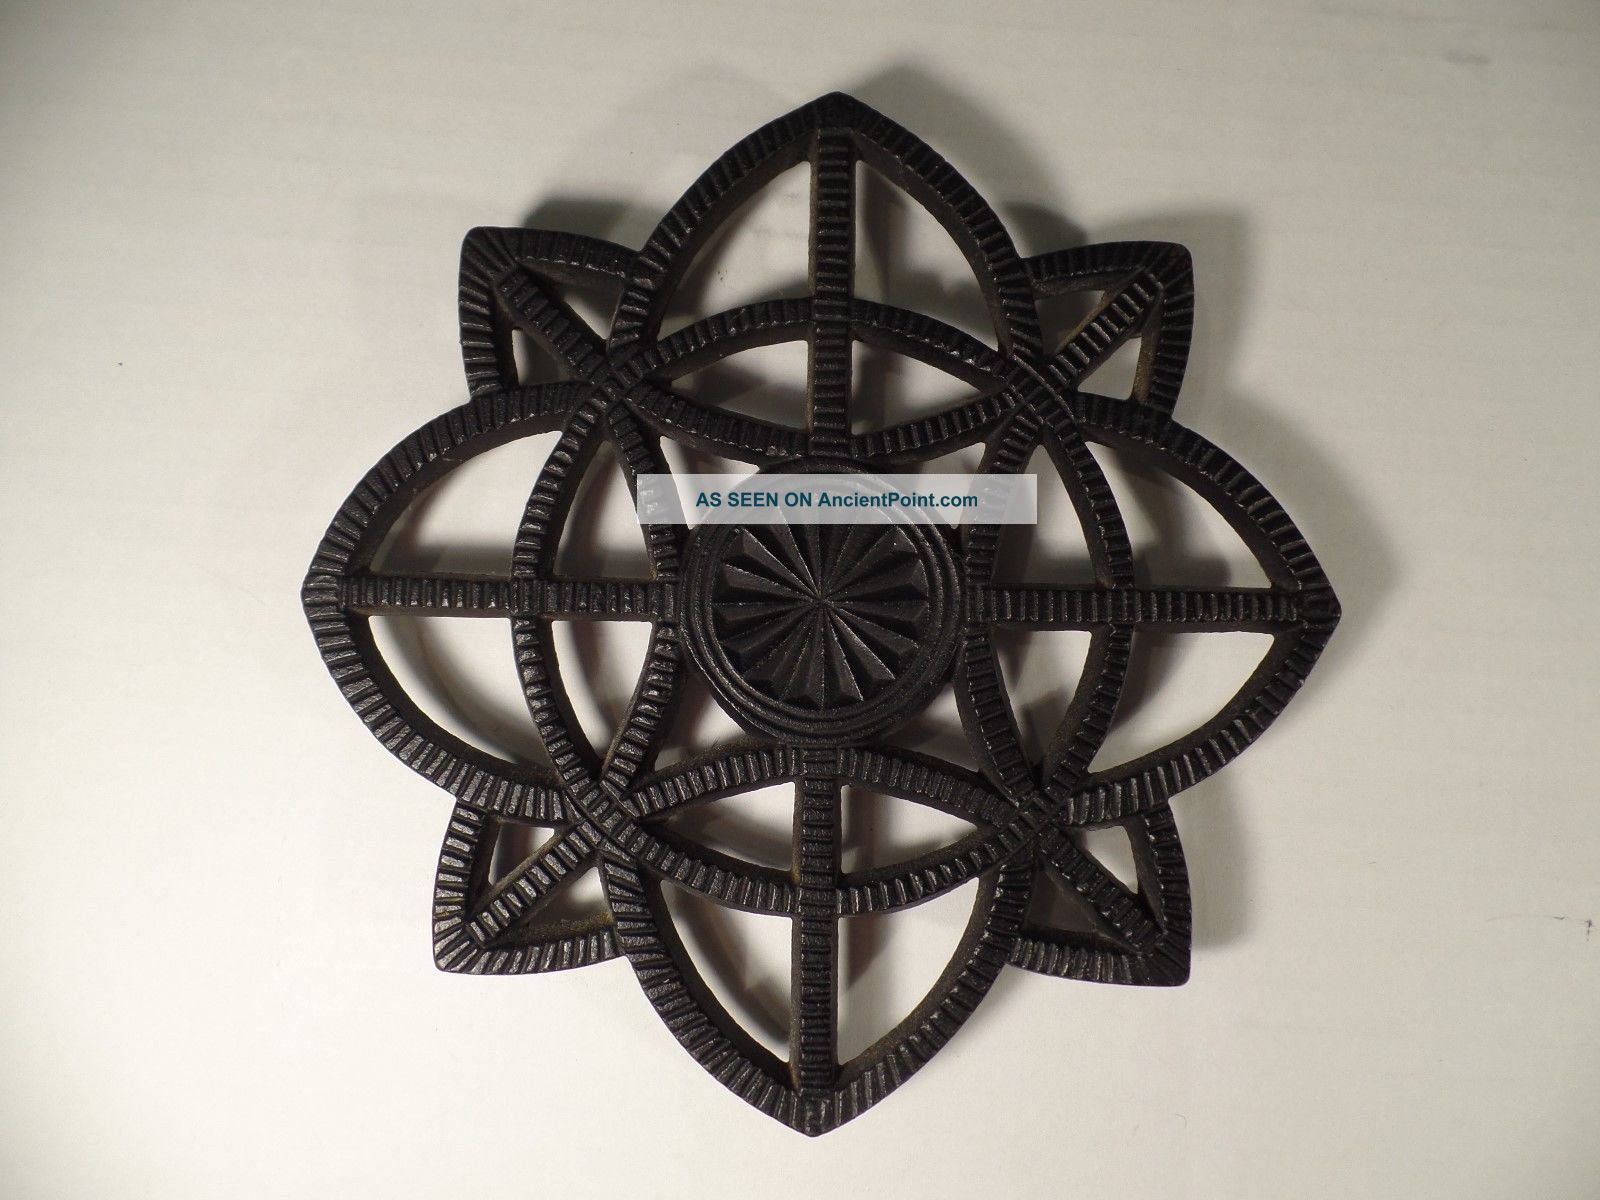 Vintage 1944 Jzh Cast Iron Trivet Pinwheel Trivets photo